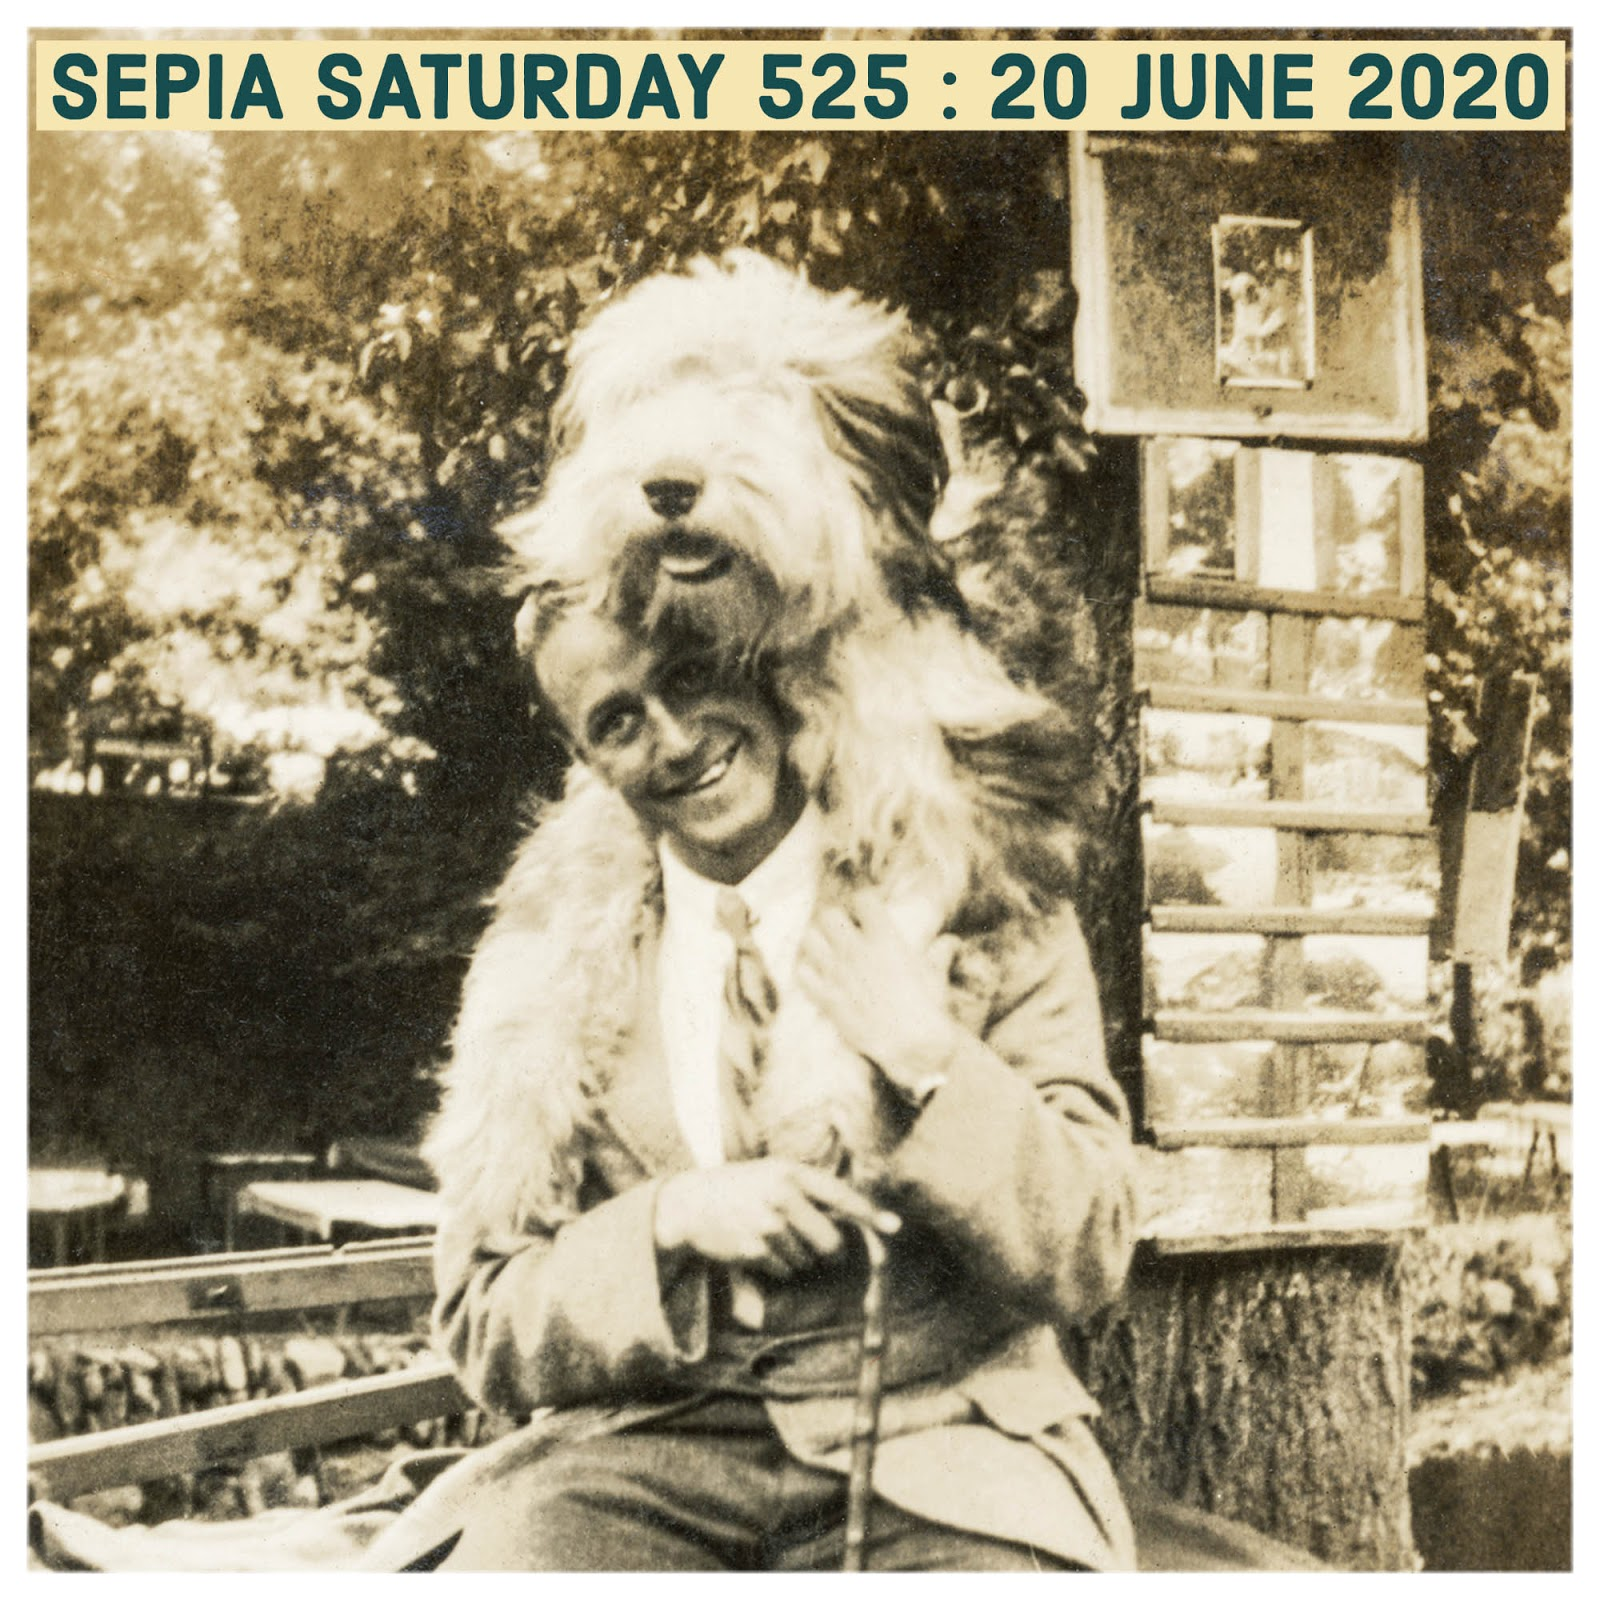 Unknown Man With A Large Dog On His Head (Sepia Saturday 525)